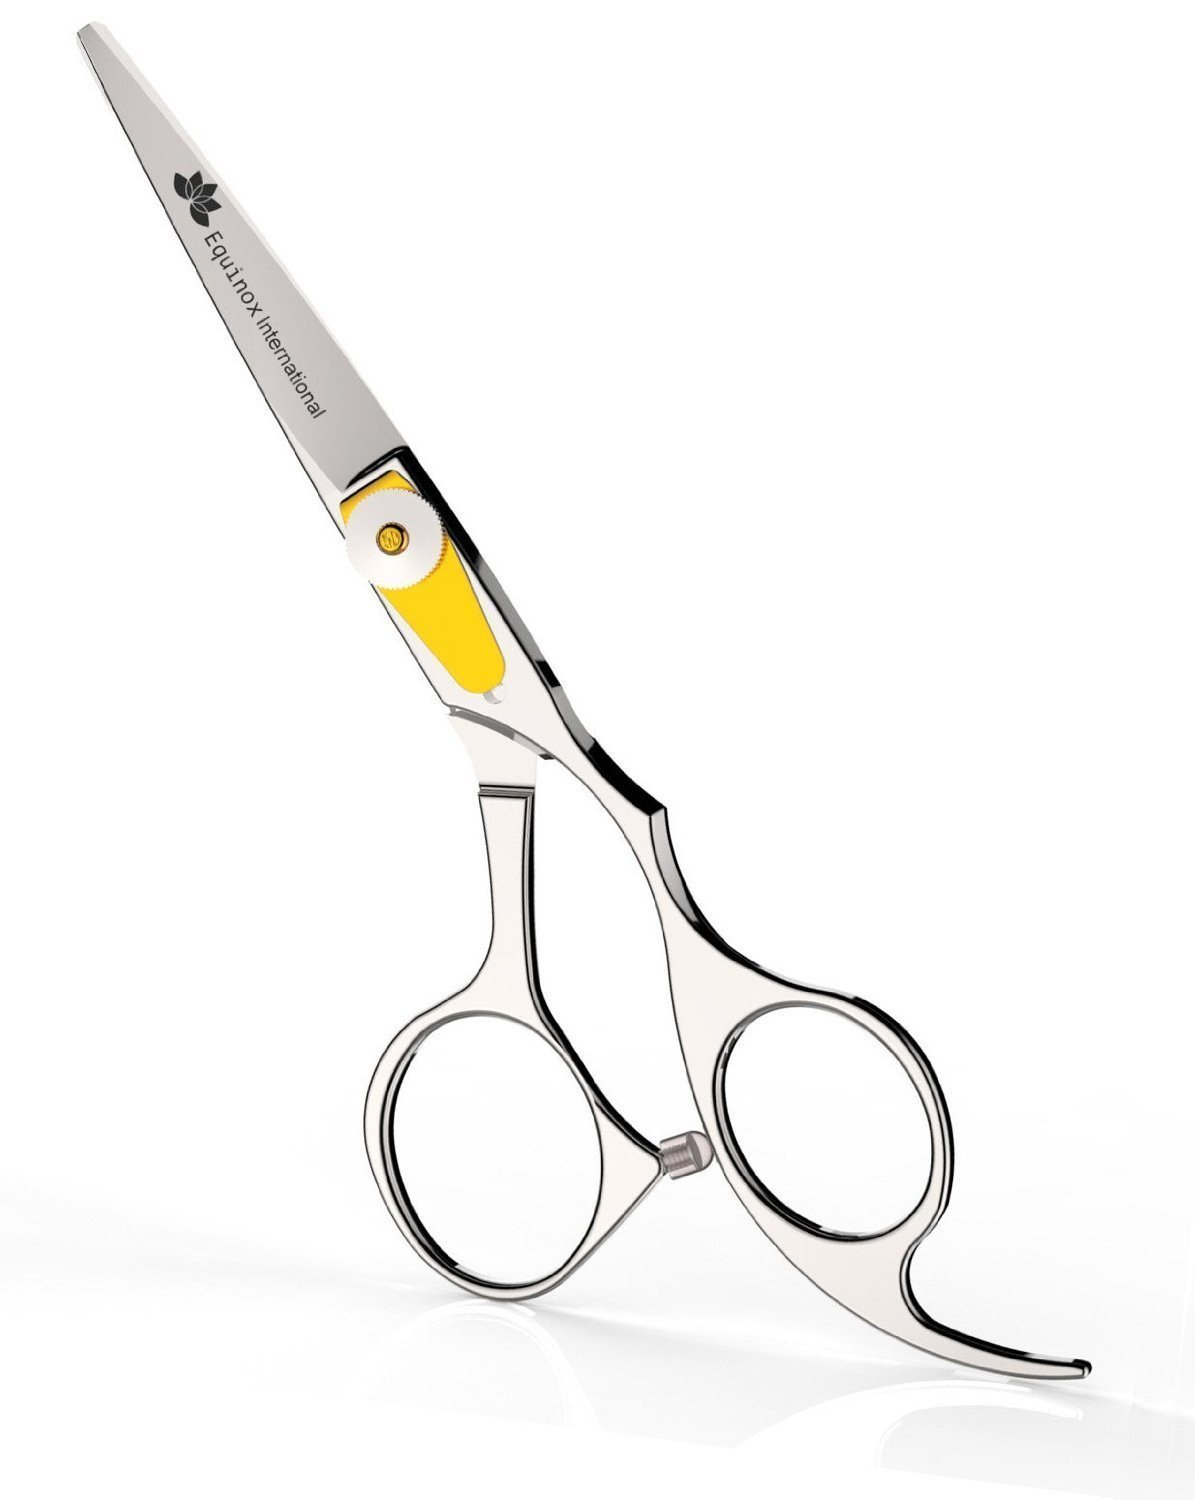 Equinox International Professional Razor Edge Series - Barber Hair Cutting Scissors/Shears - 6.5